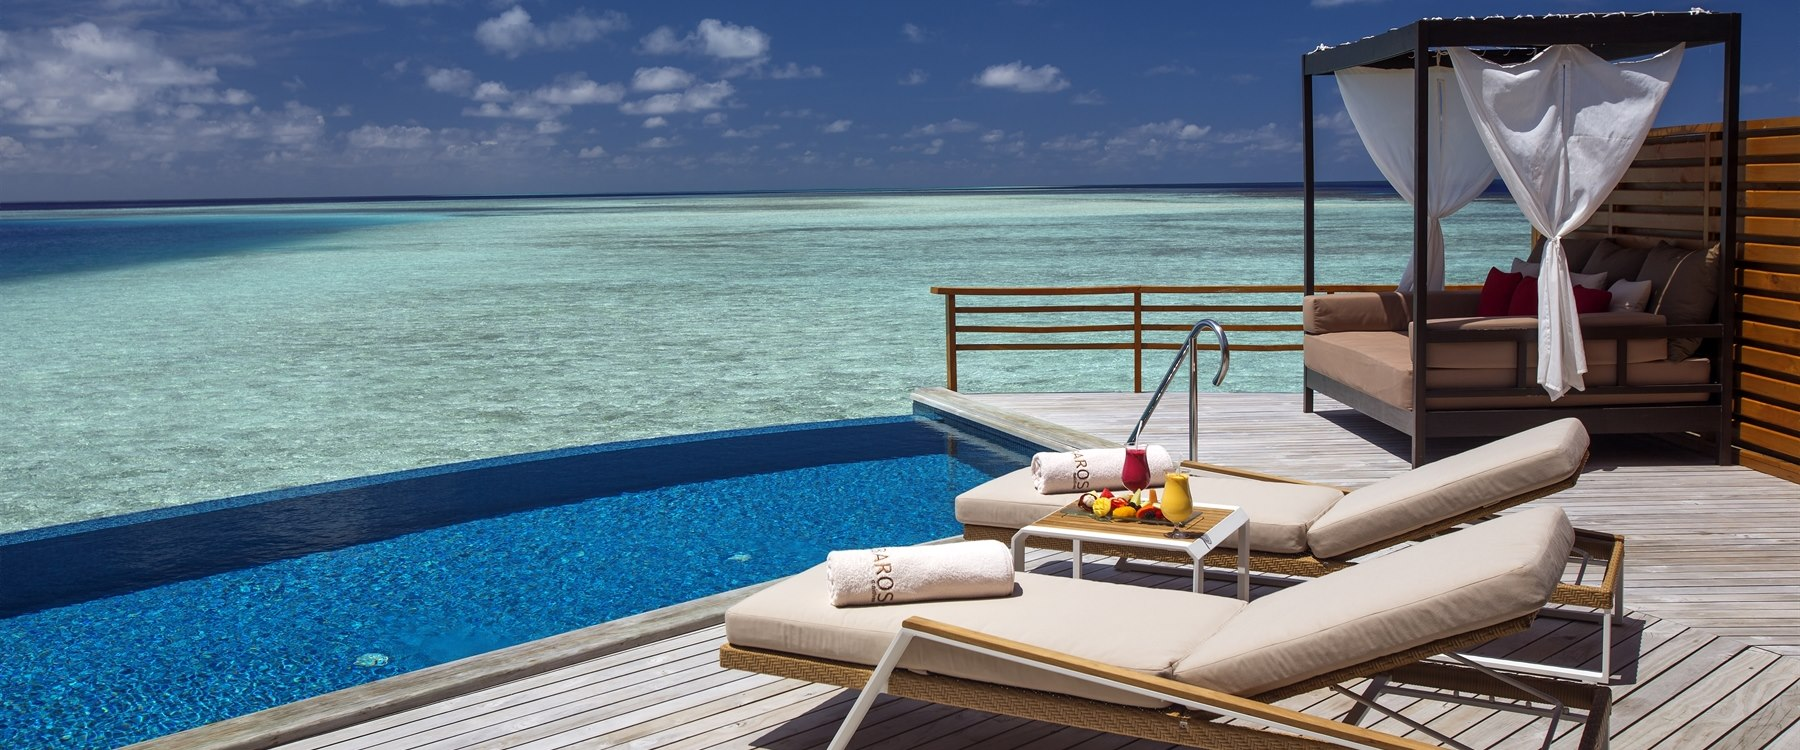 private swimming pool at Baros, Maldives